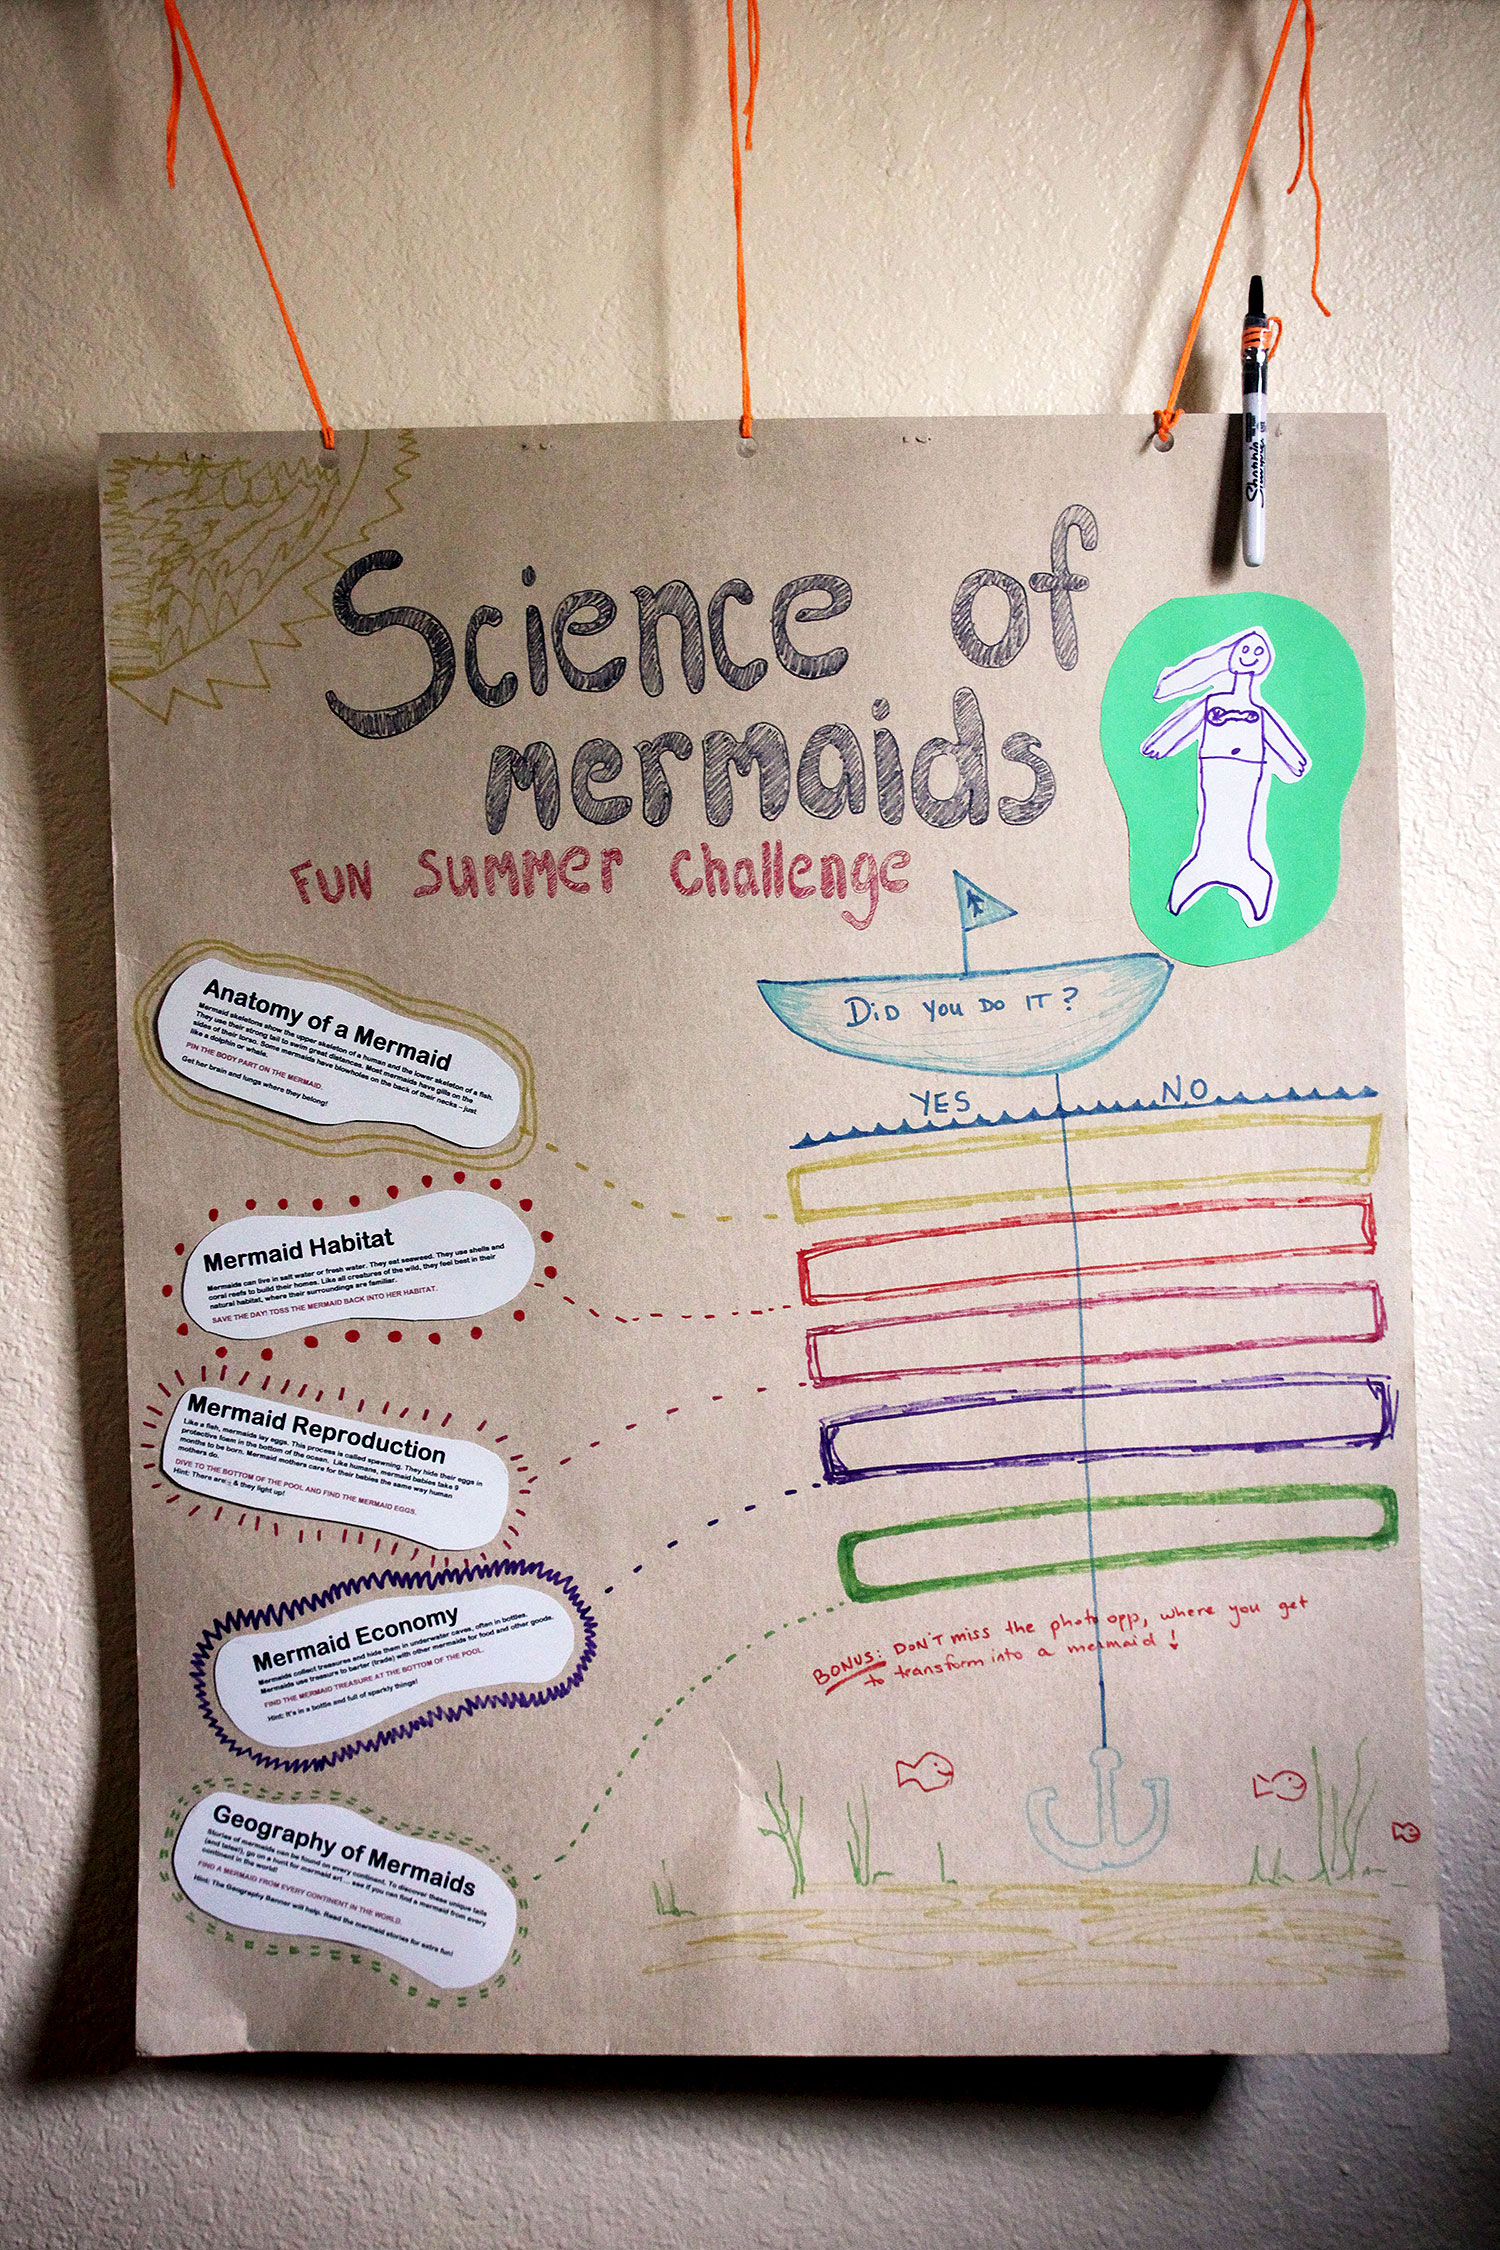 hight resolution of science of mermaids birthday party challenge checklist